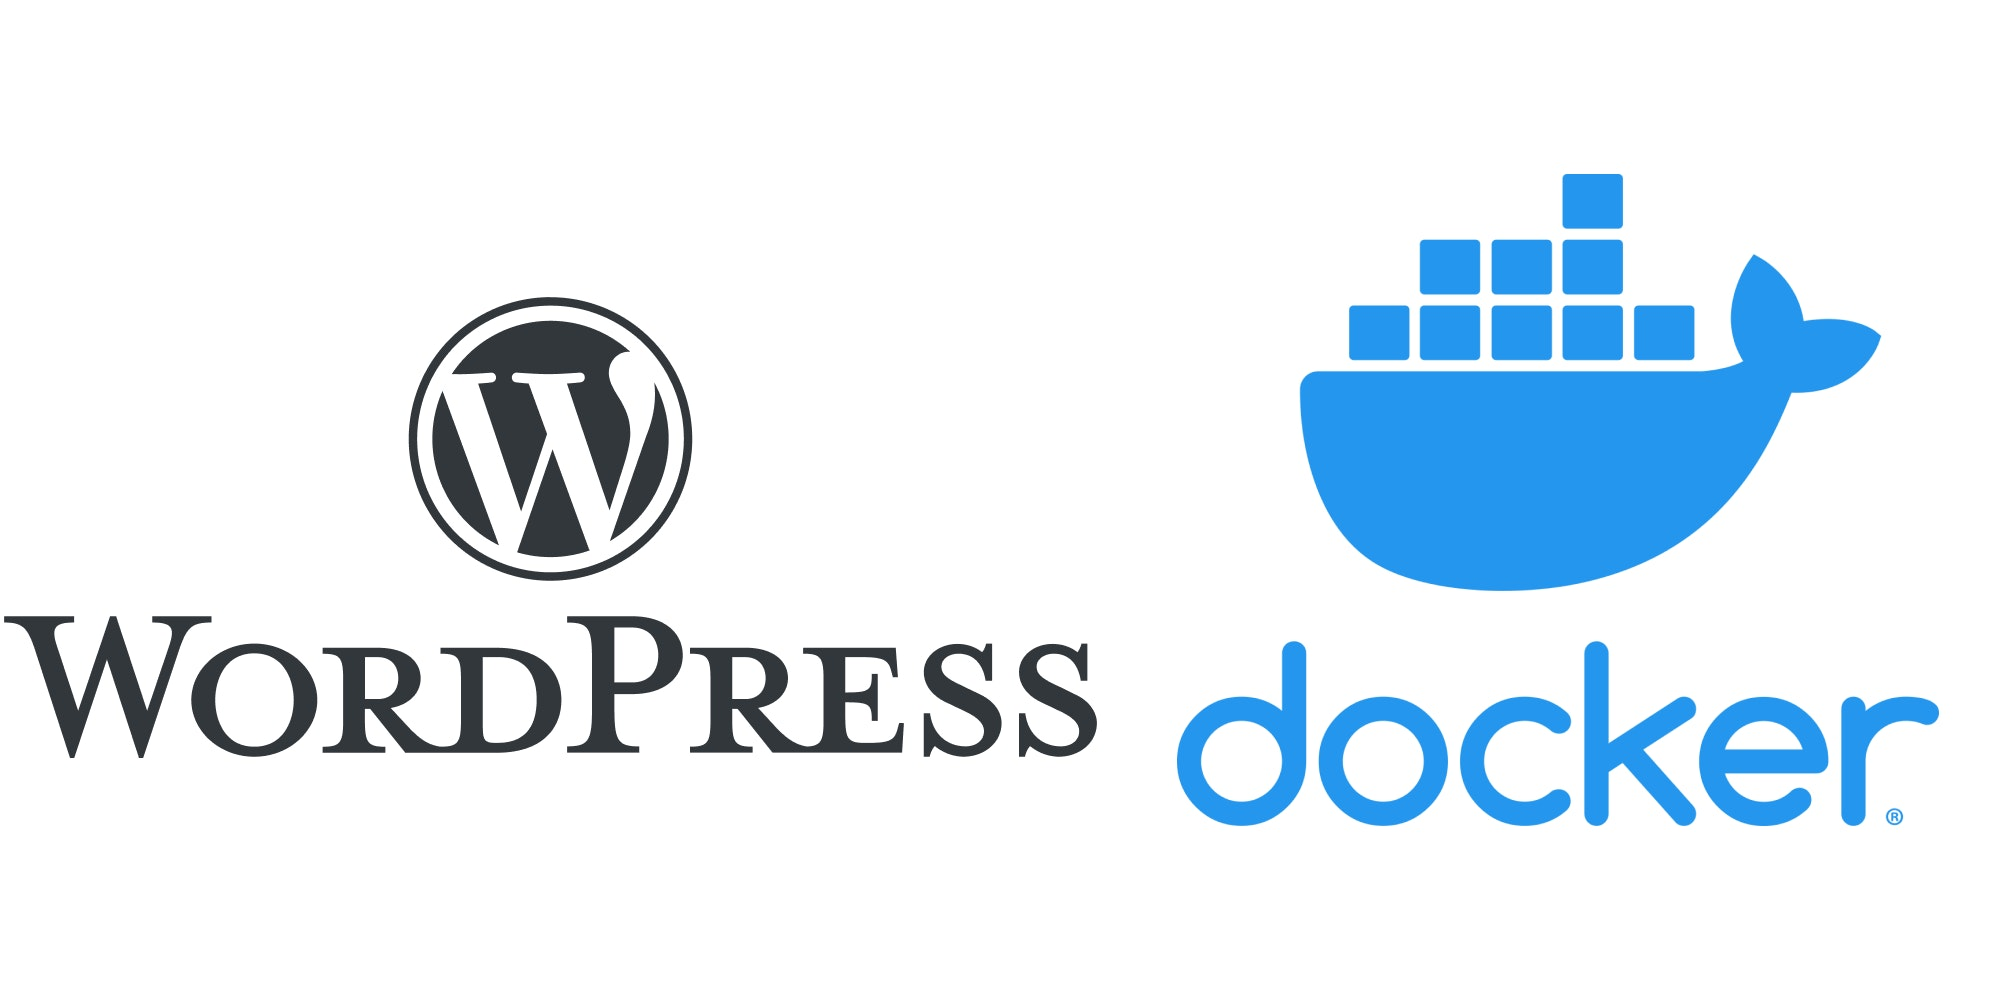 Cover Image for How to install Wordpress with Docker in 4 easy steps